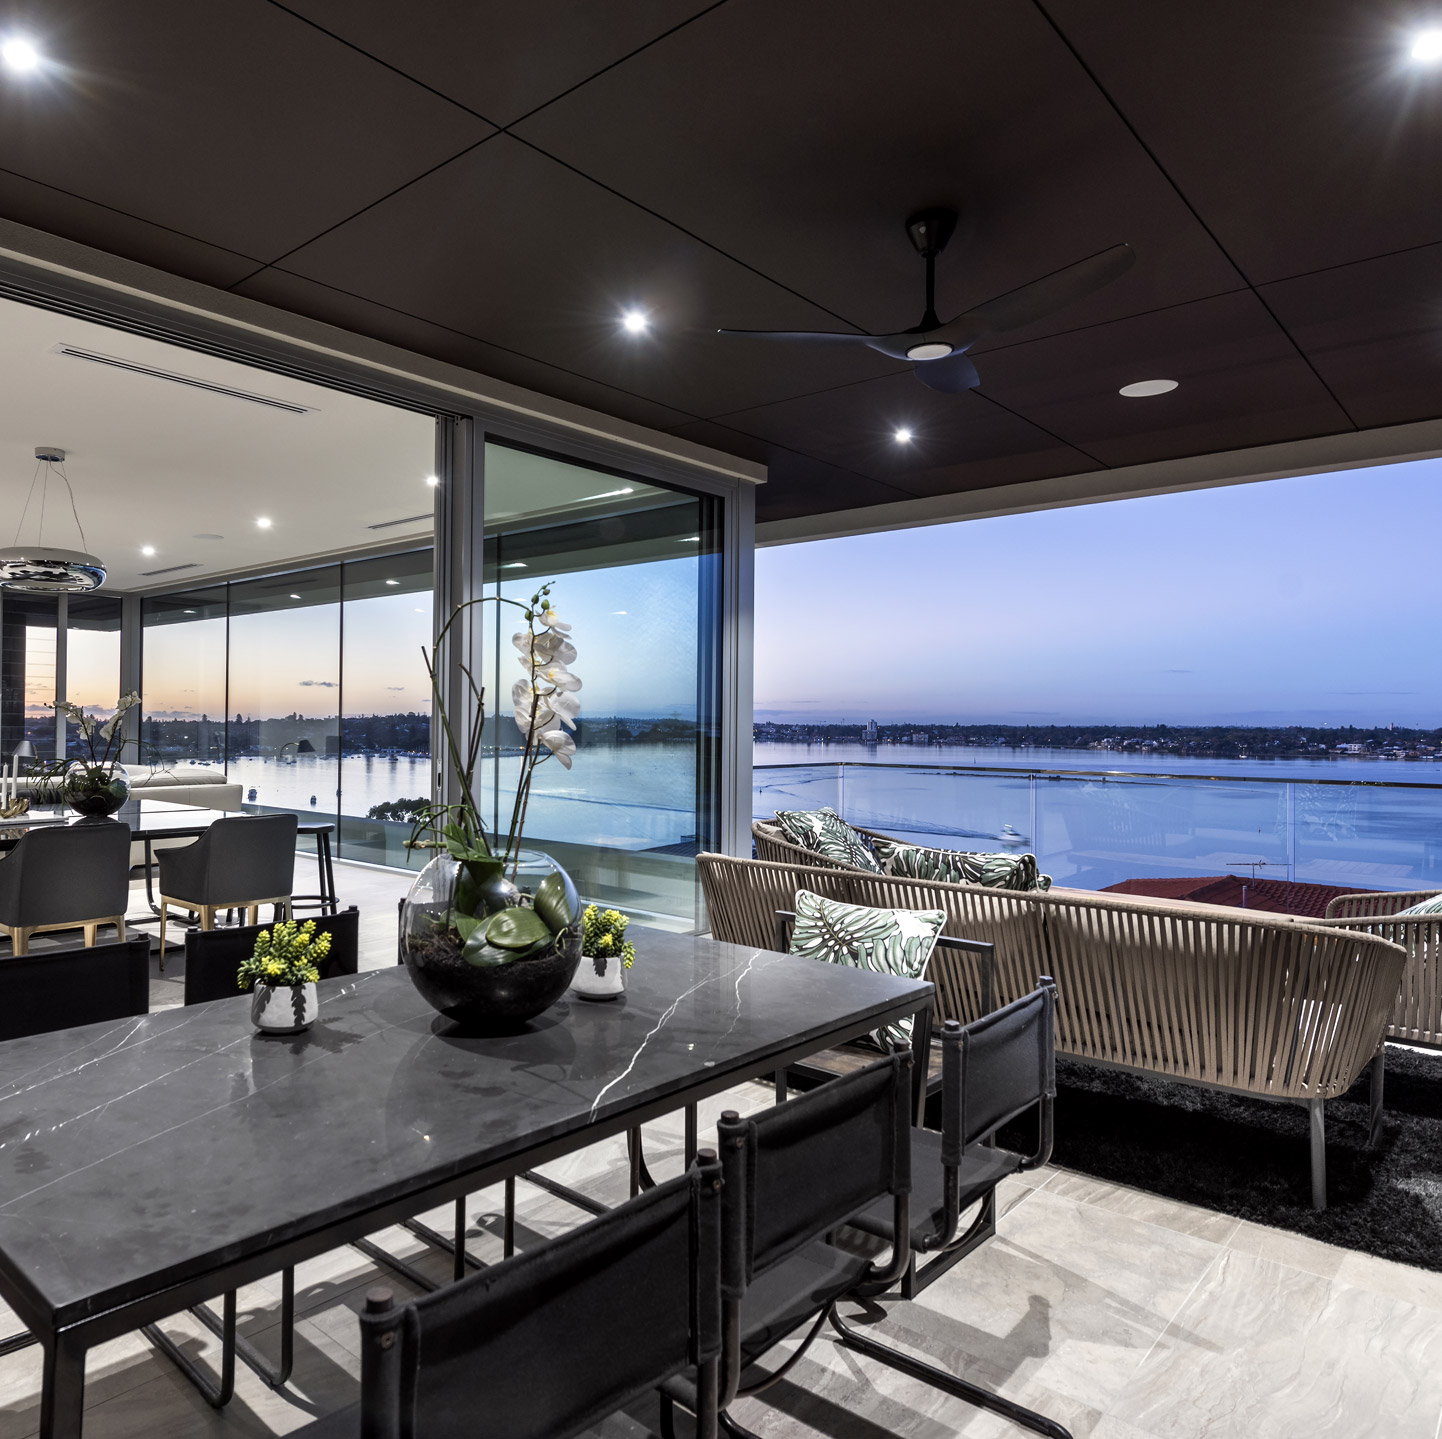 View of a table inside Mosman Park home